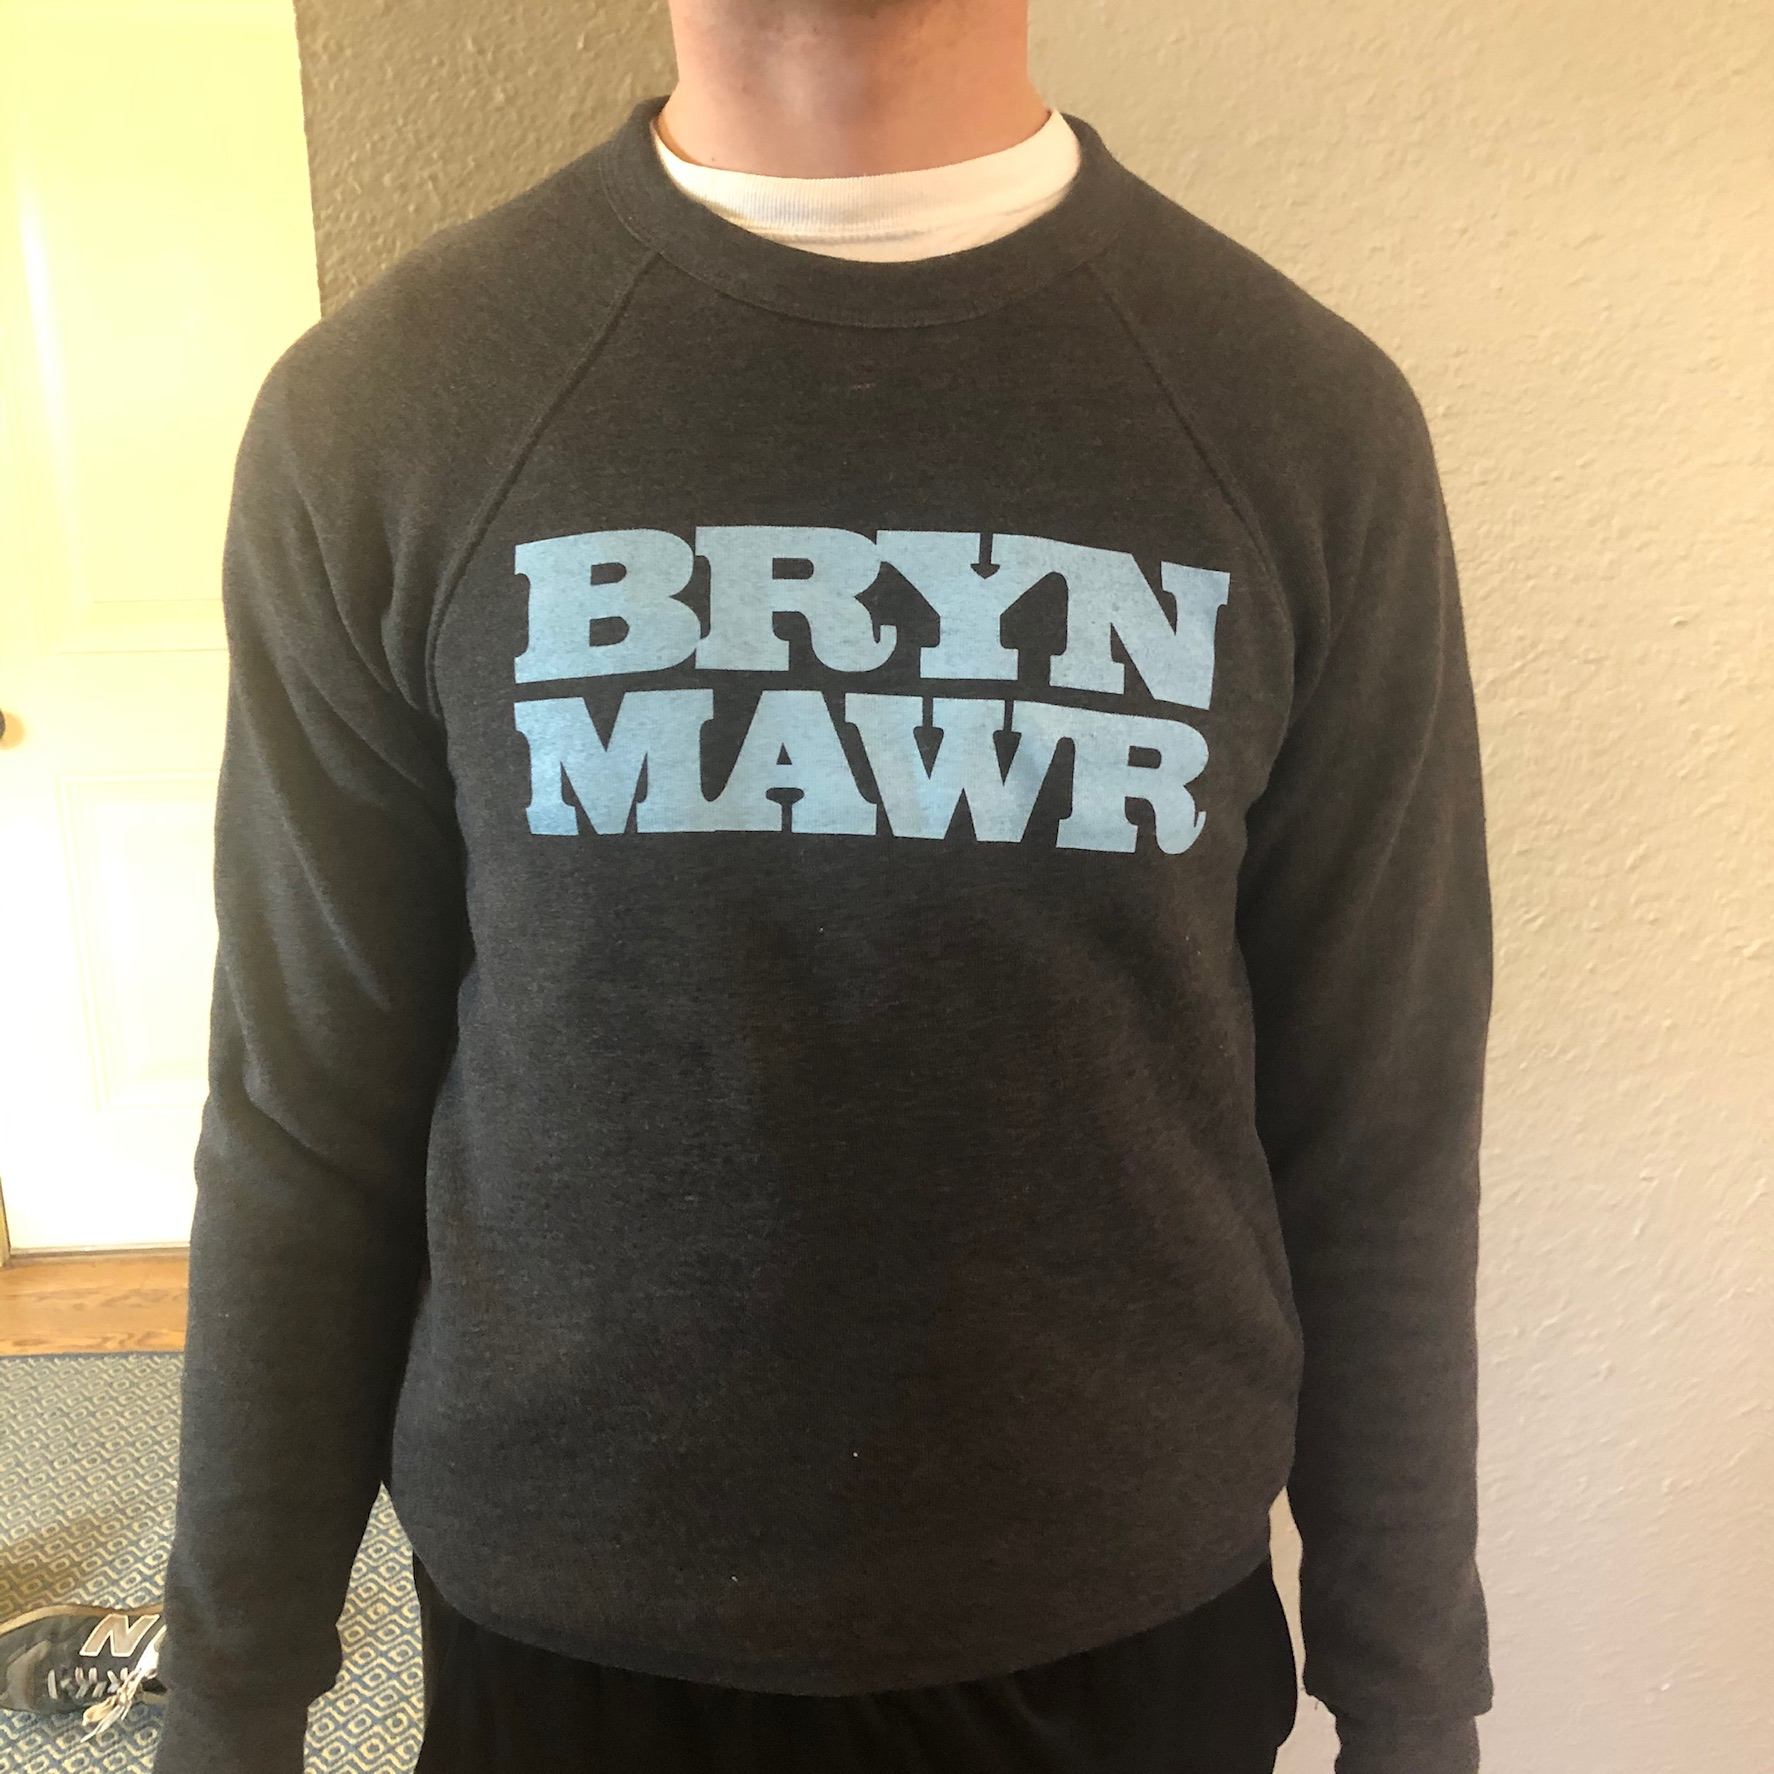 dark heather gray crew neck with light blue lettering